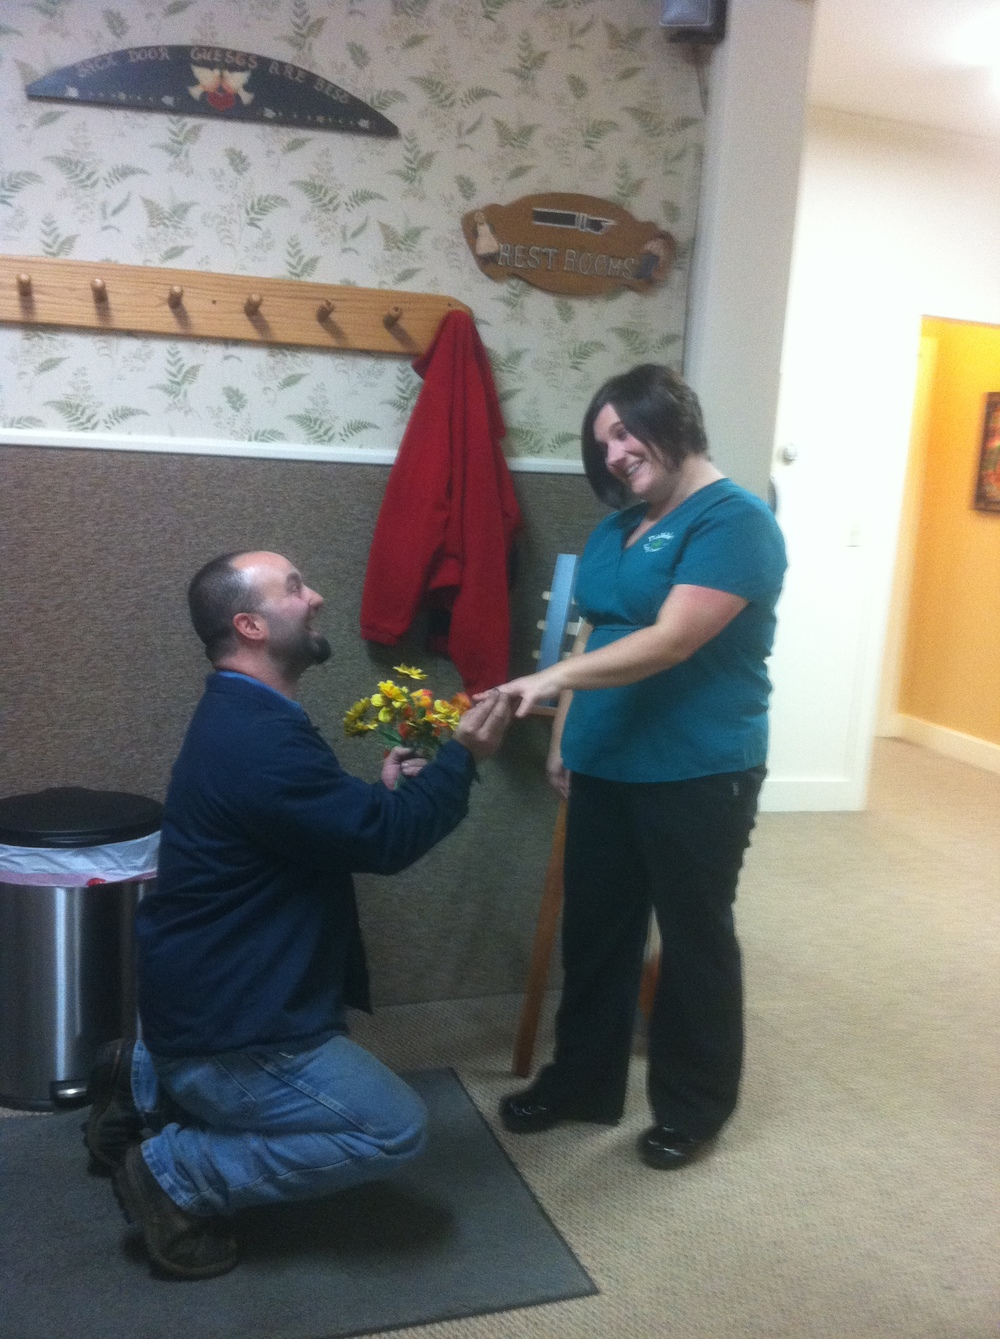 anything can happen at fiddlehead!.. several years ago, one of our team members was surprised by a proposal of marriage in our waiting room!  now the happy couple has 3 children!